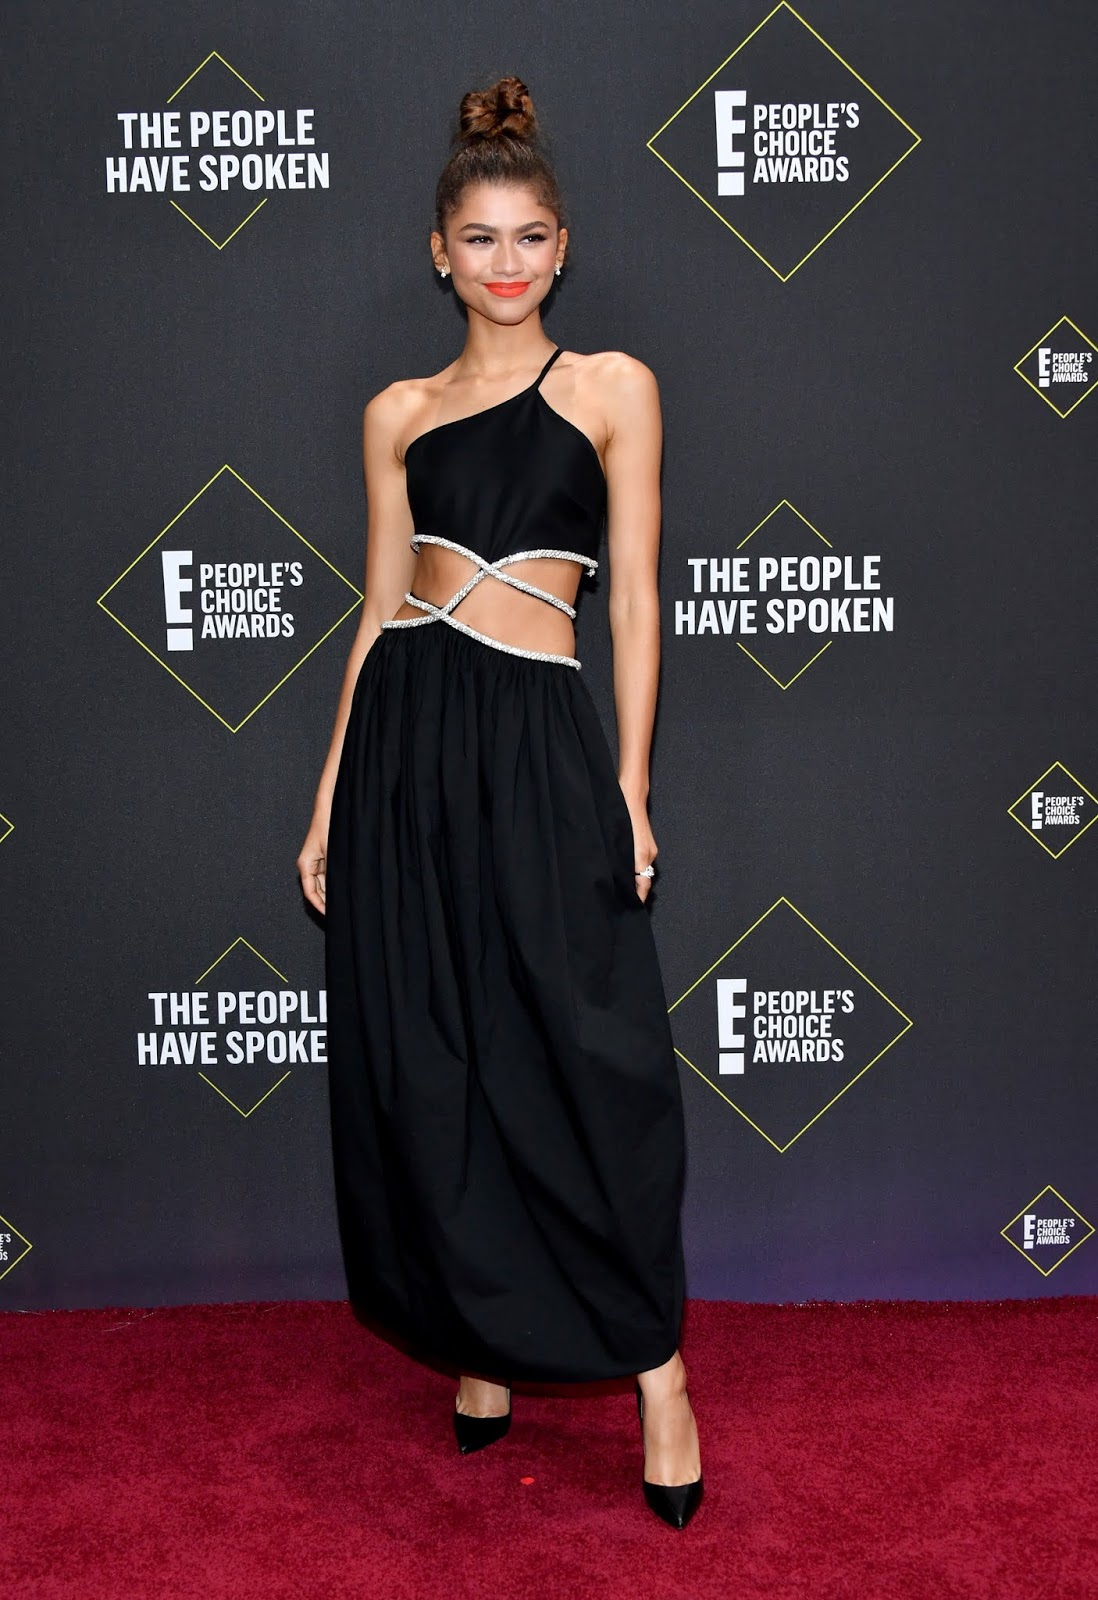 Zendaya shows off abs at the 2019 People's Choice Awards